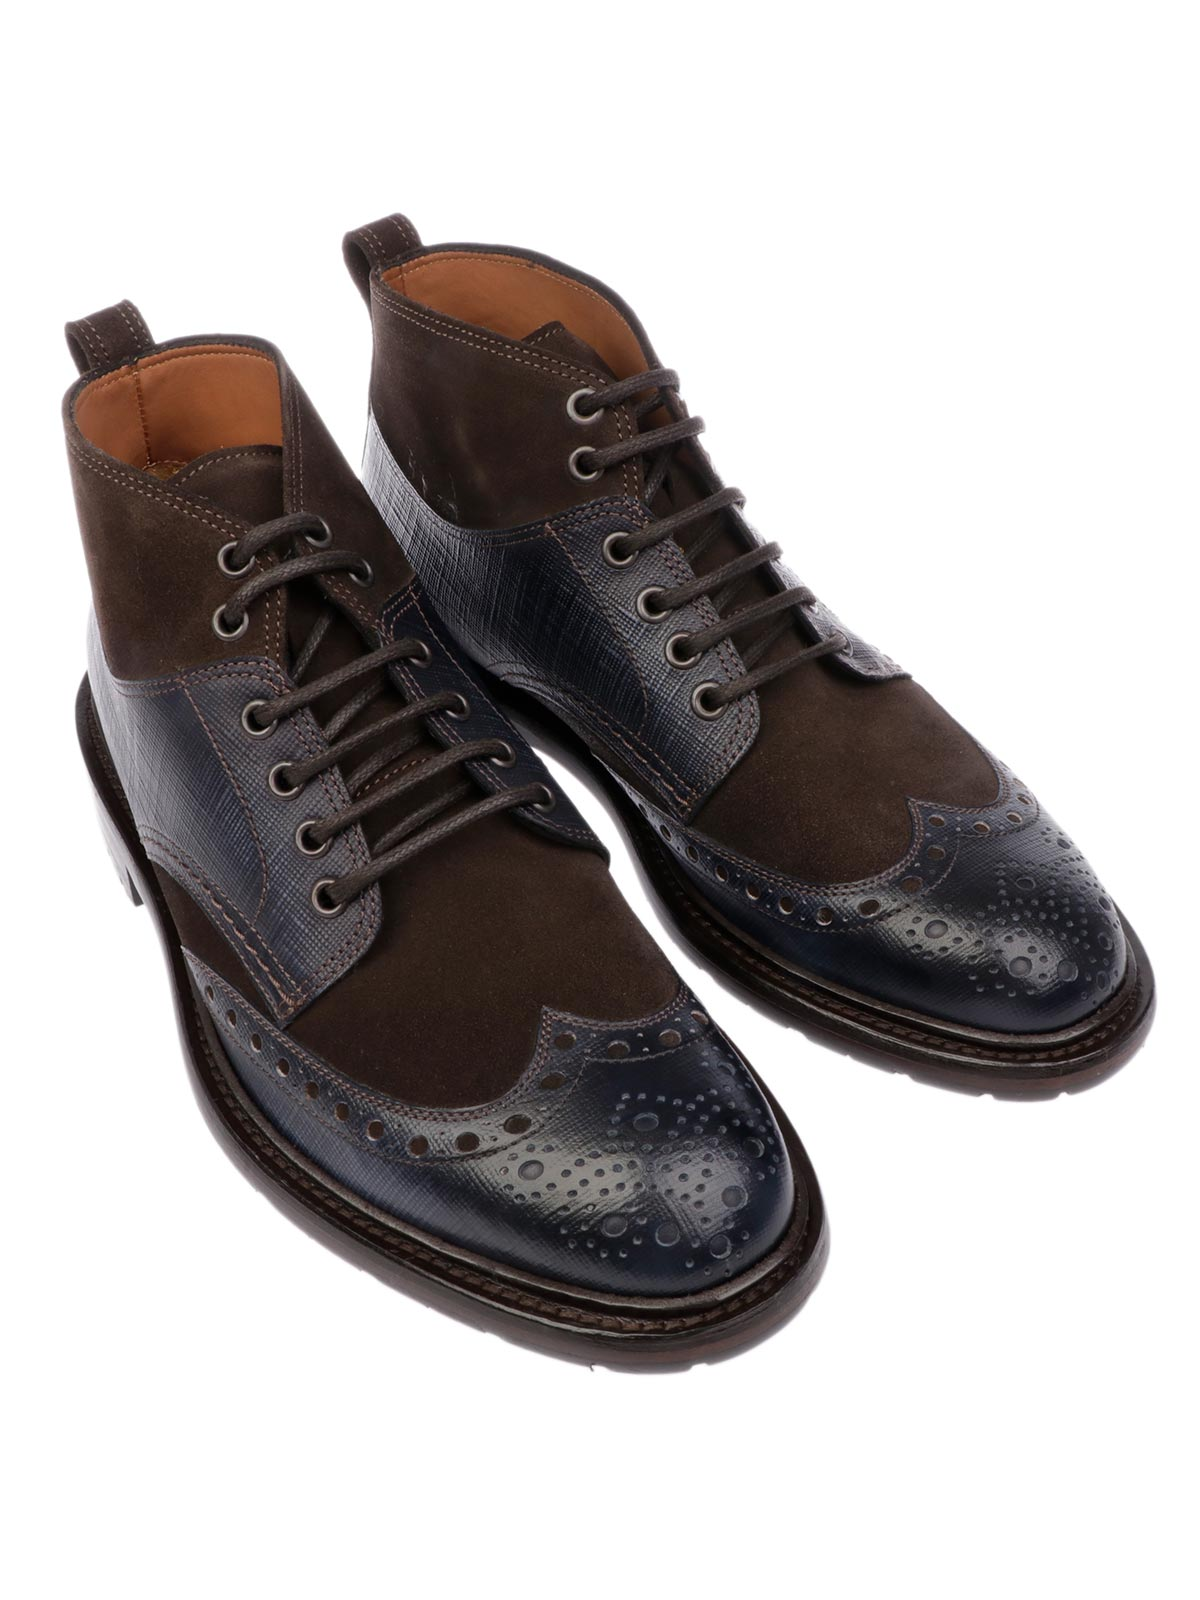 Picture of BOTTI   Men's Leather Ankle Boots